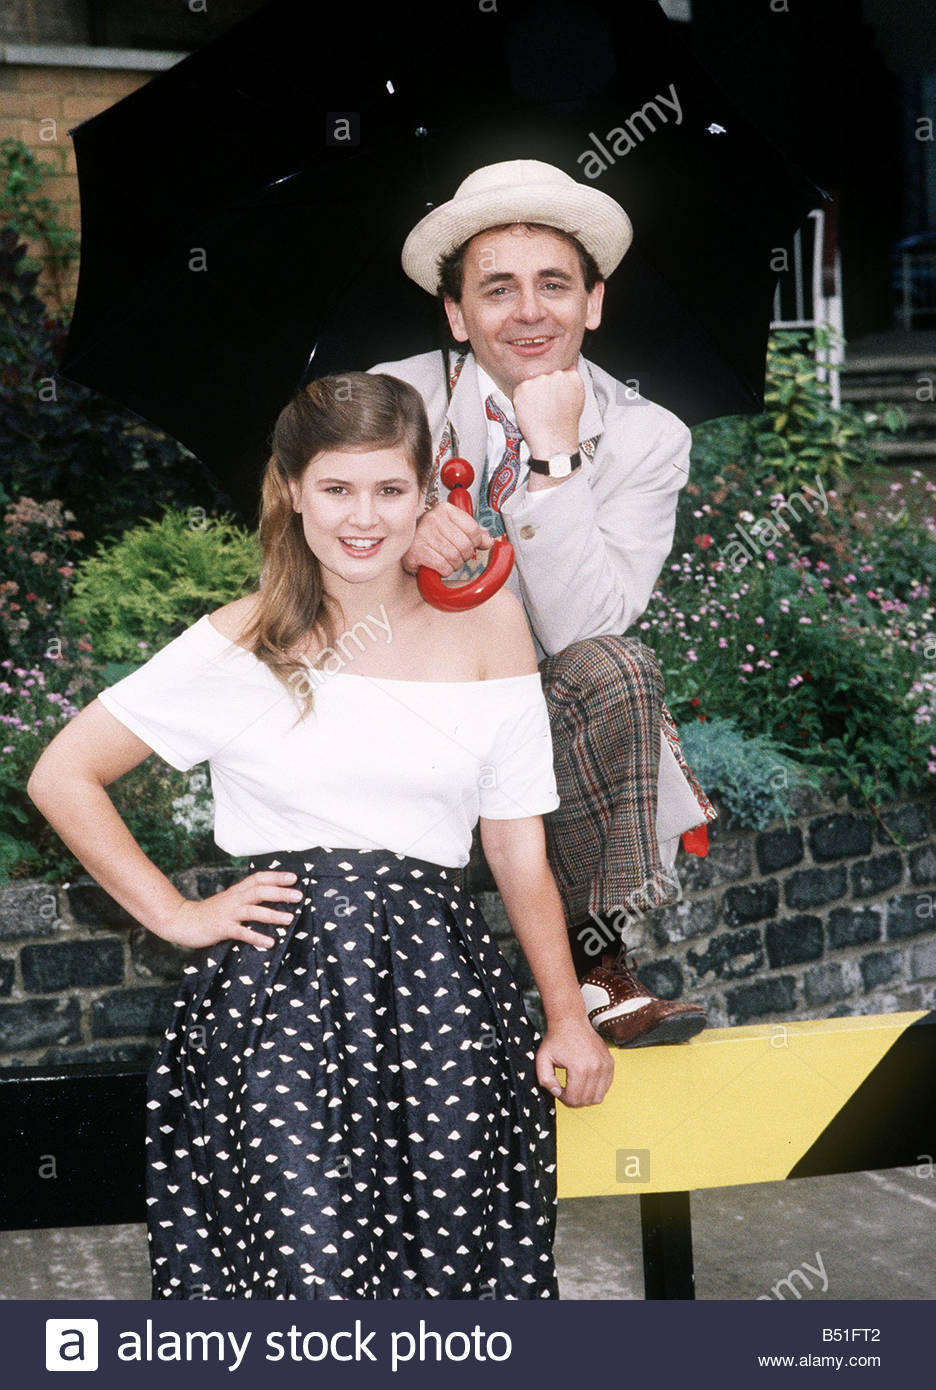 actress-sophie-aldred-who-played-the-companion-ace-next-to-doctor-B51FT2.jpg